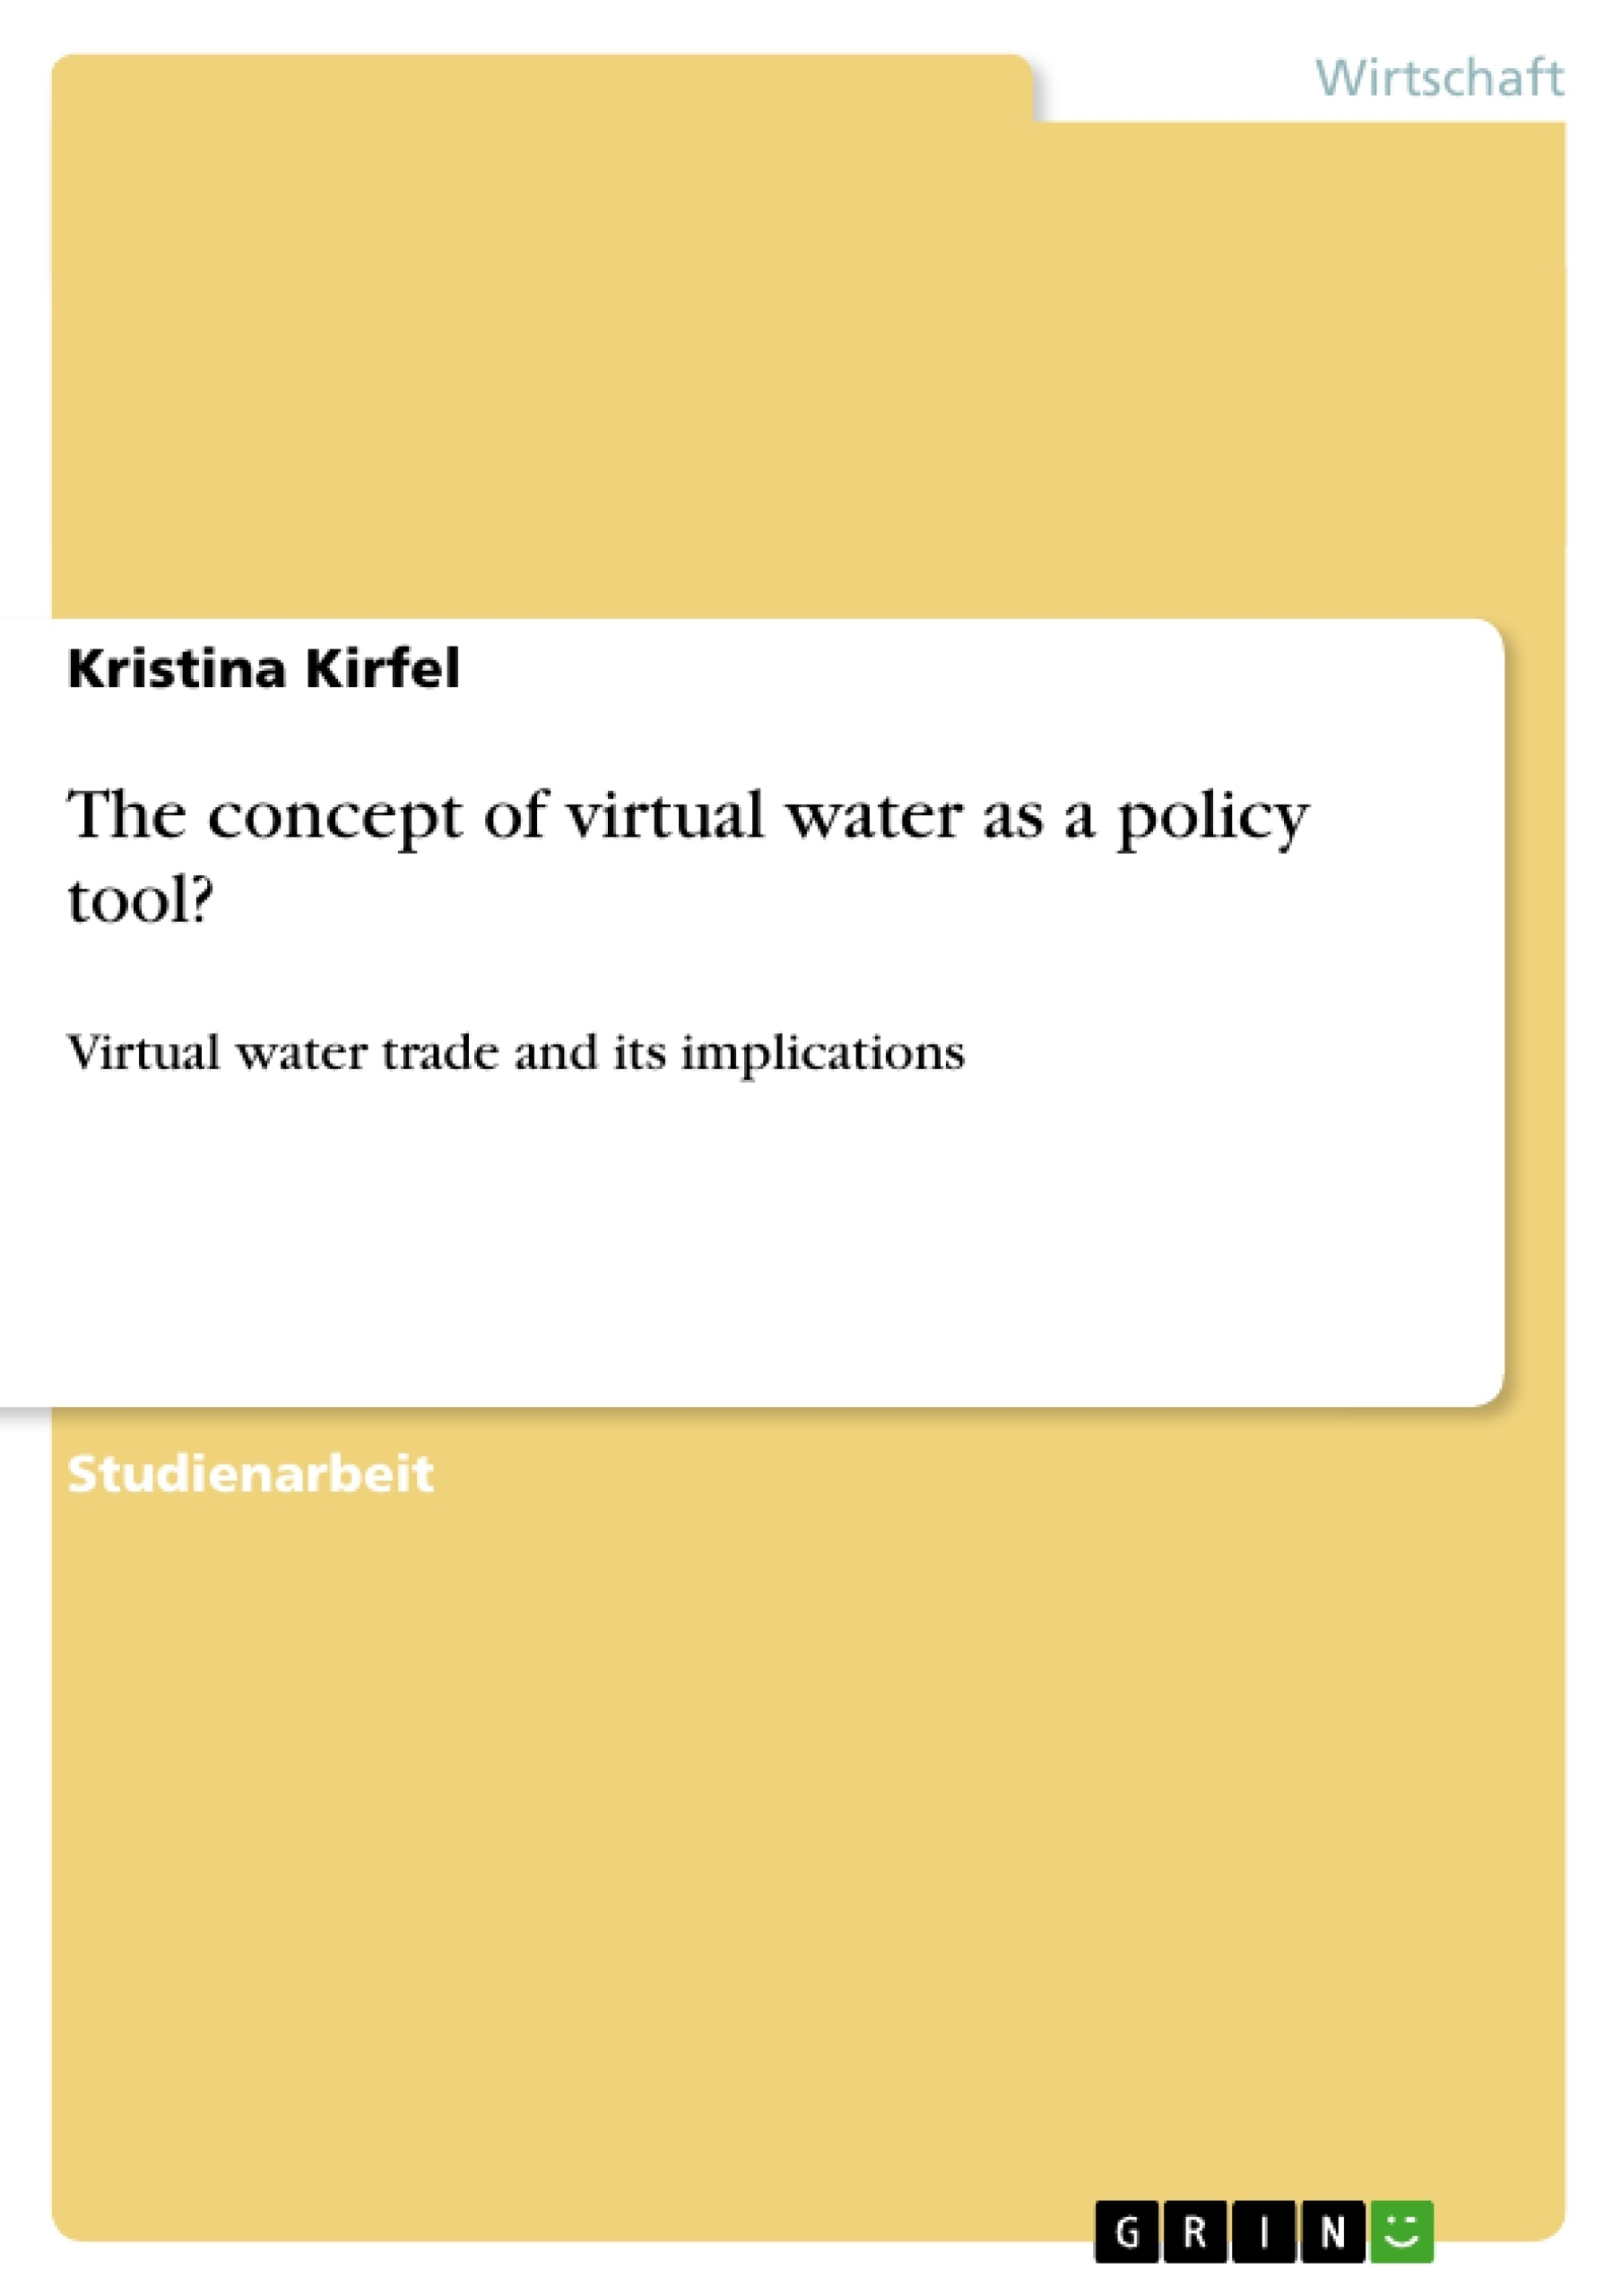 Titel: The concept of virtual water as a policy tool?